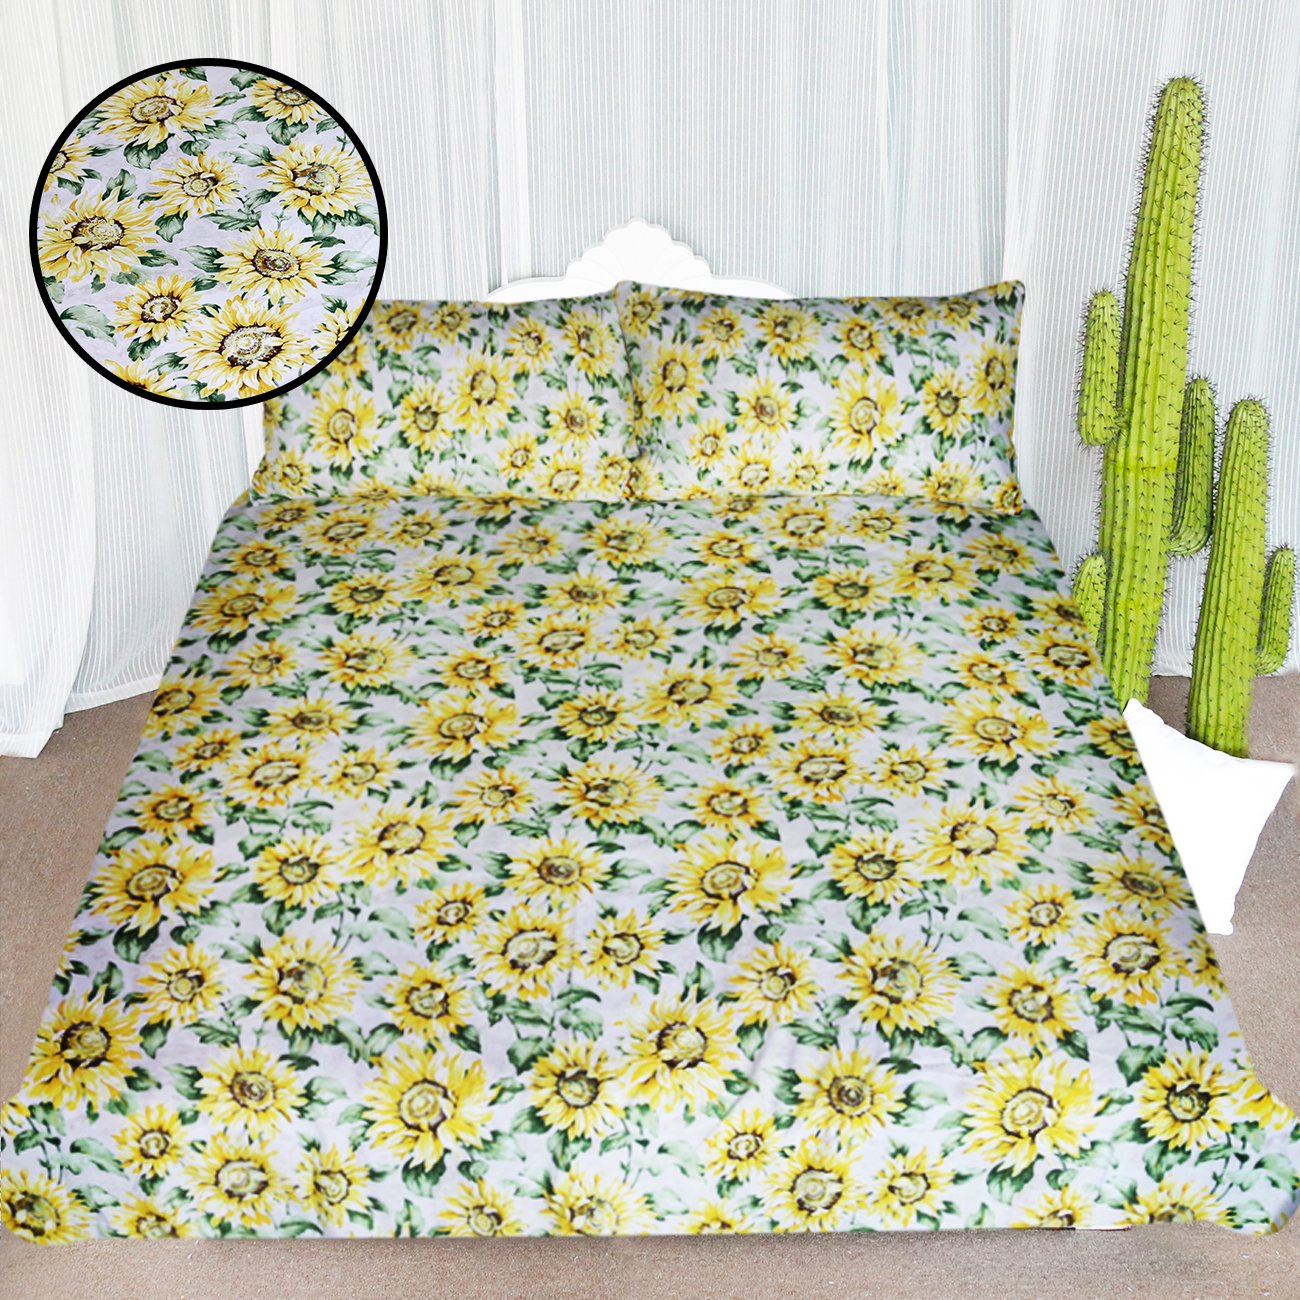 ARIGHTEX Fashion Sunflower Bedding Women Girls Floral Nature Pattern Duvet Cover 3 Piece Set Rustic Country Design Bedspread, Yellow Green (Twin)